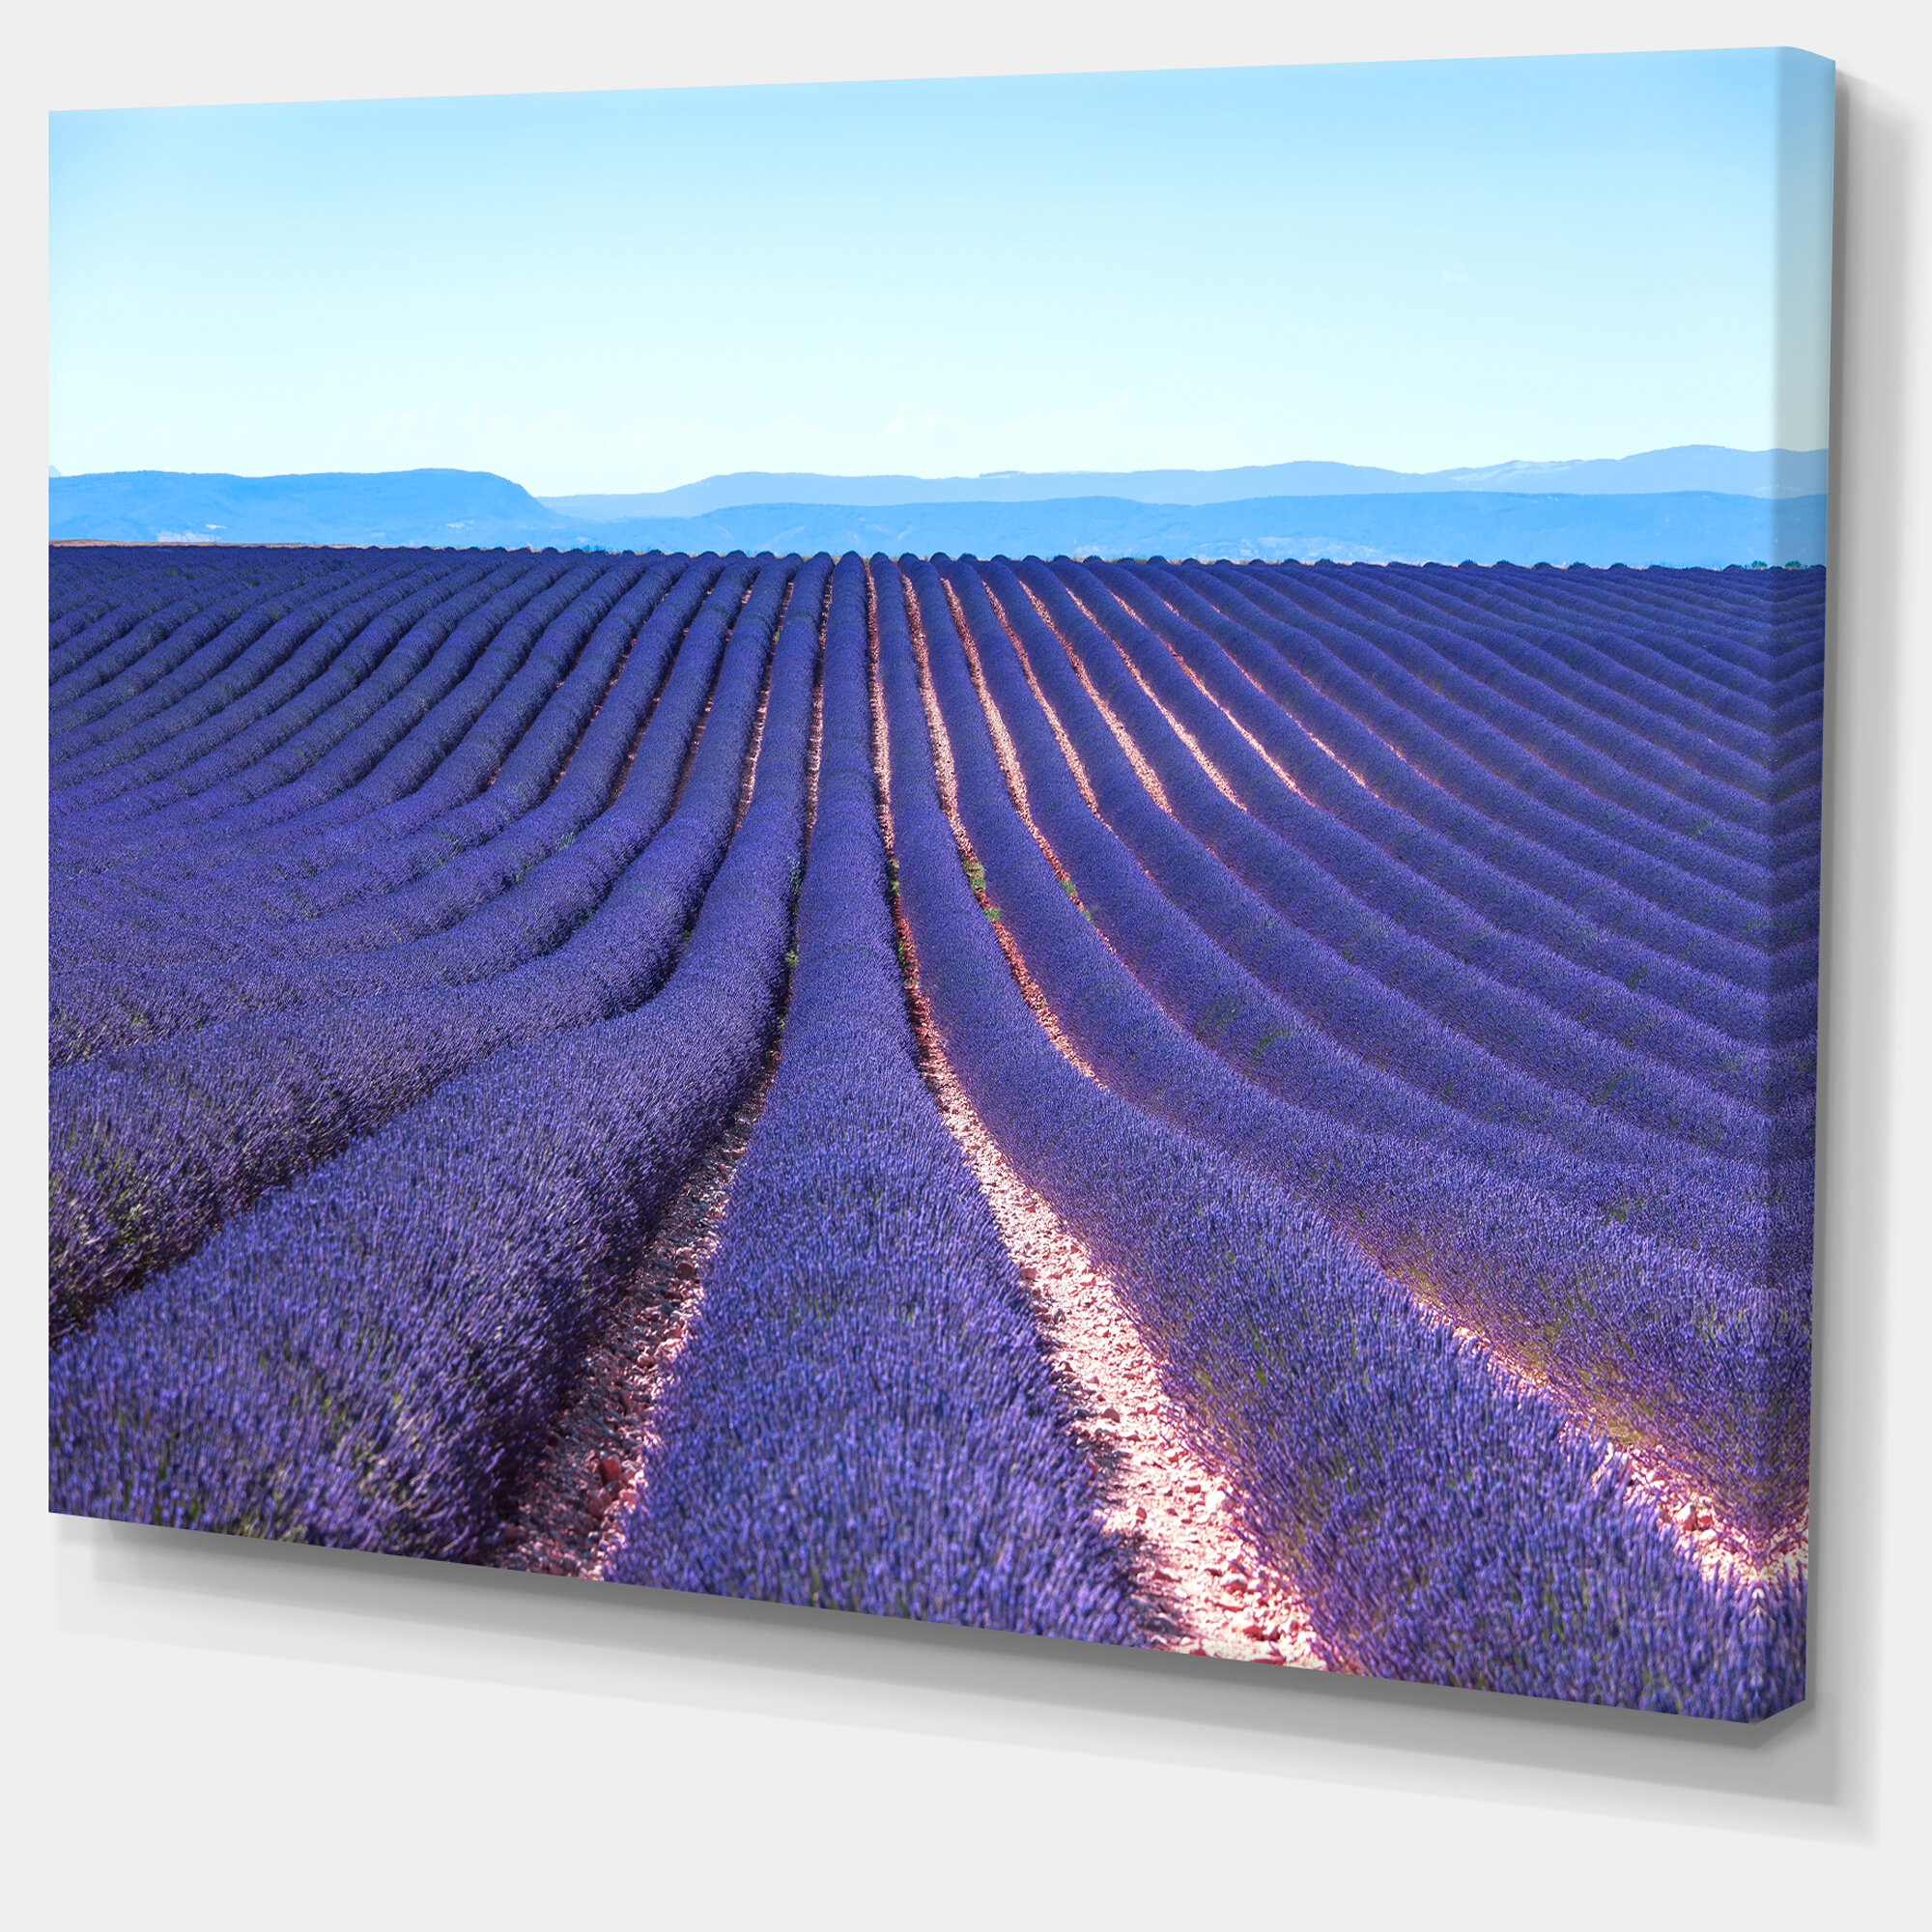 Designart Endless Rows Of Lavender Flowers Photographic Print On Wrapped Canvas Wayfair